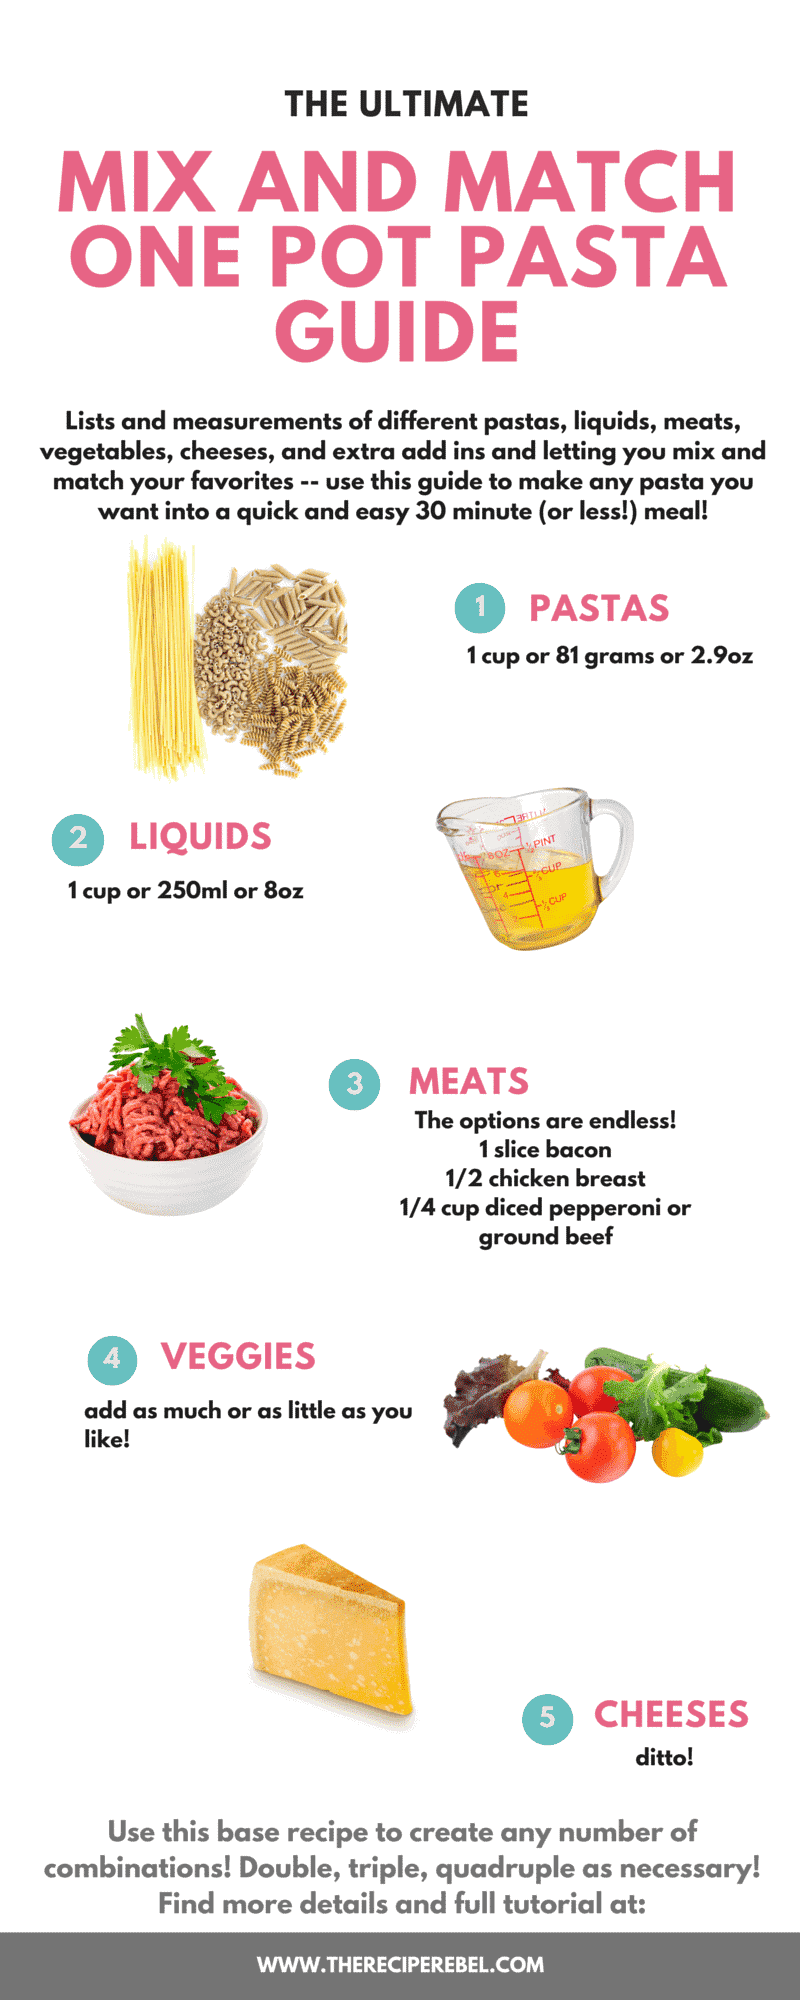 long title image for mix and match one pot pasta guide including measurements for pasta liquid and more